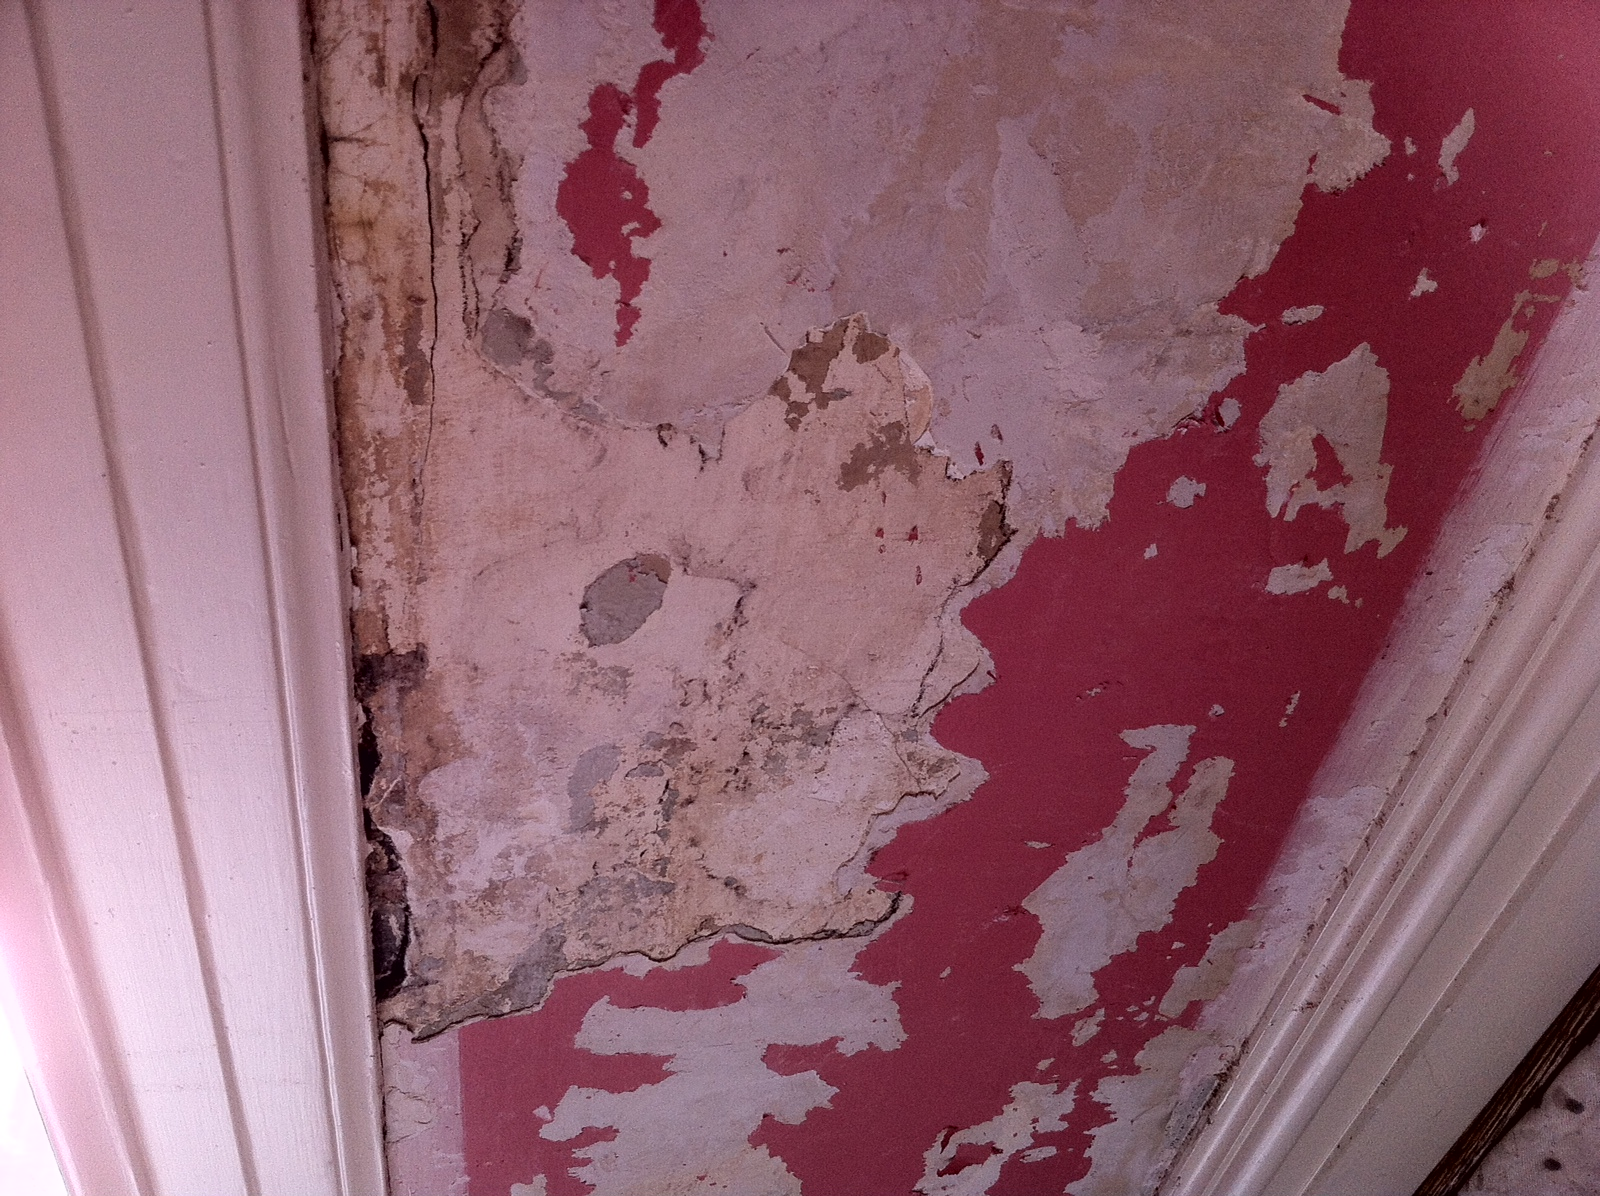 Wallpaper Removal & Wall Restoration in Central West End - Kennedy ...